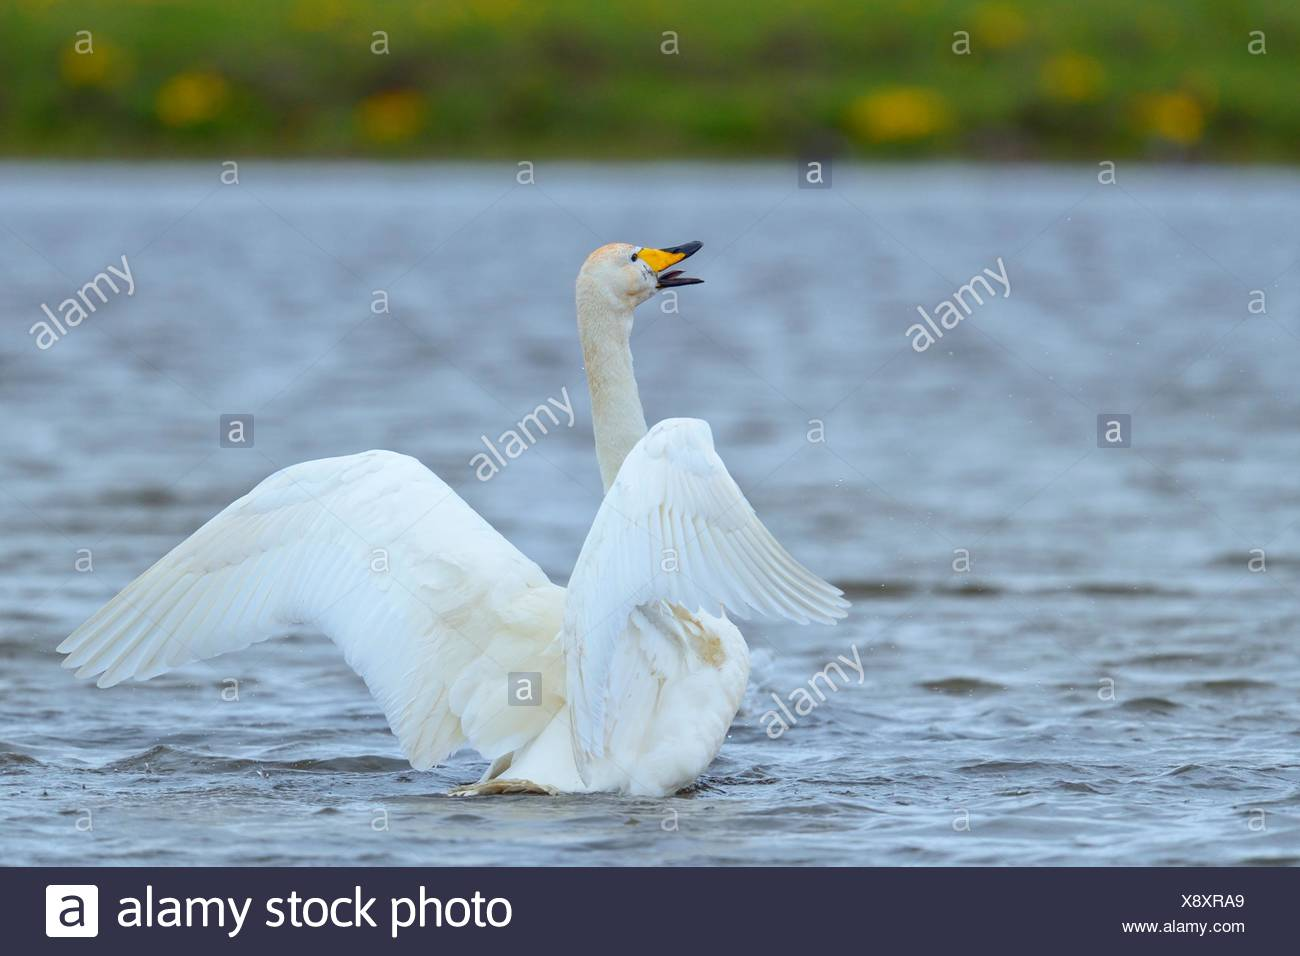 Whooper swan (Cygnus cygnus), flapping wings, Southern Region, Iceland Stock Photo